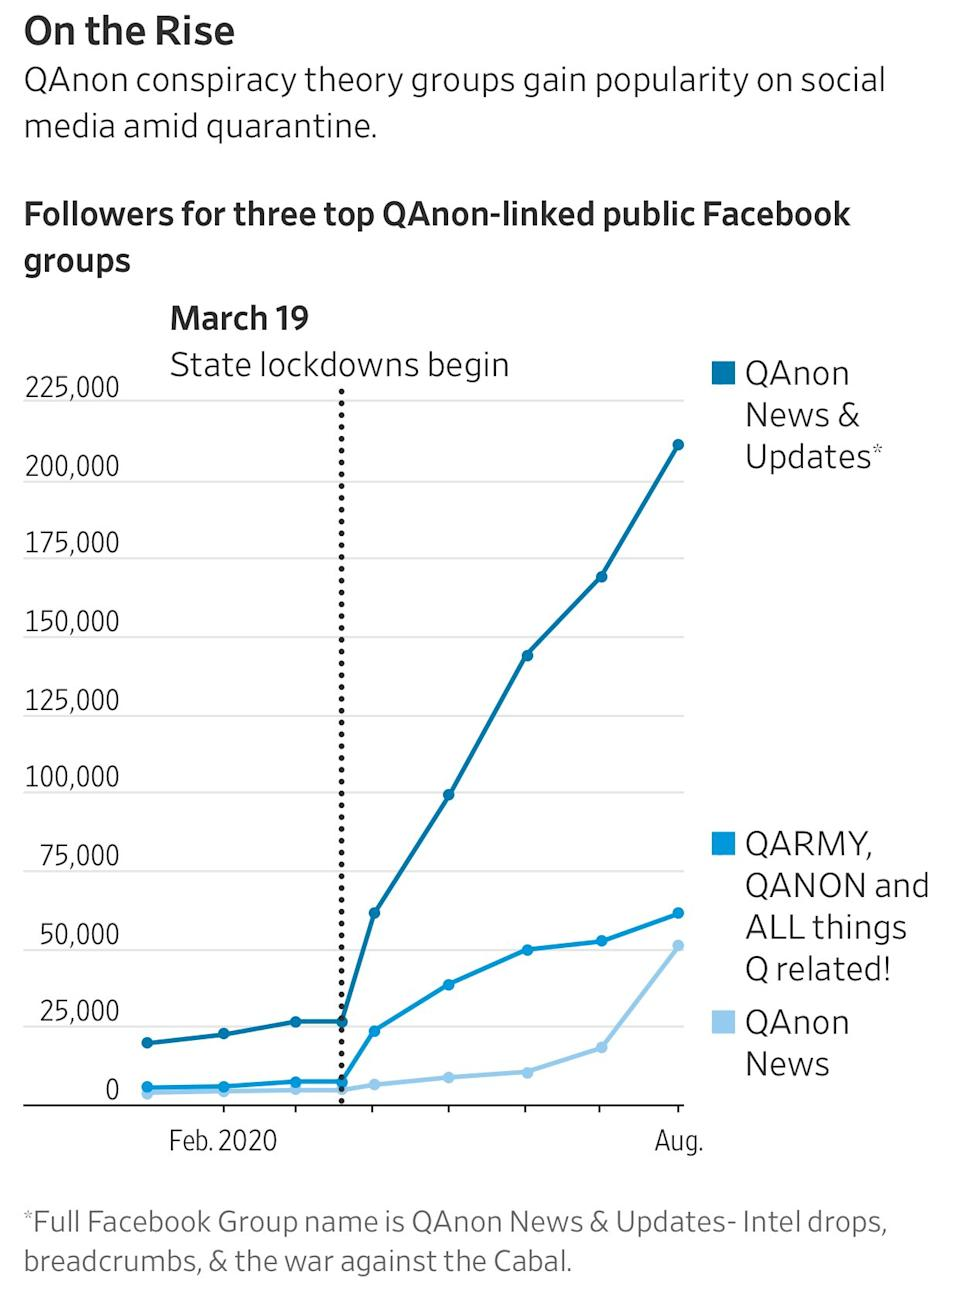 QAnon accounts have surged in popularity on American social media during the pandemic. Source: Storyful via WSJ